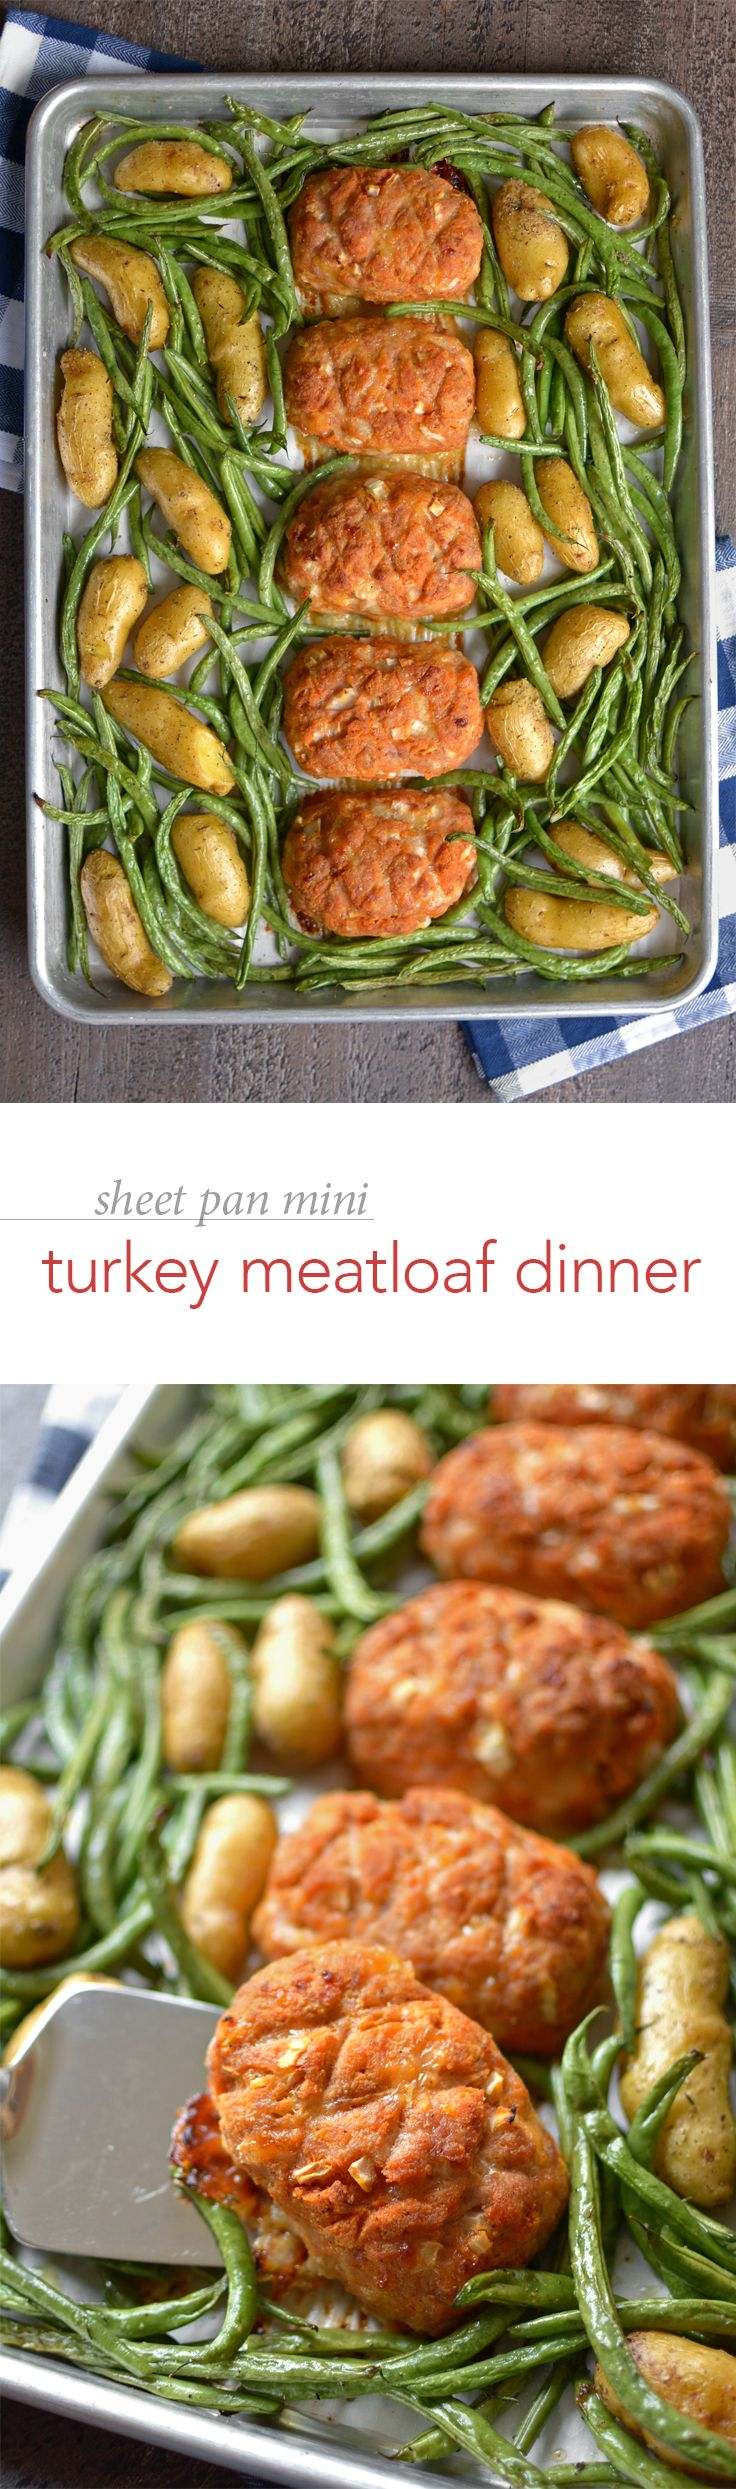 Sheet Pan Mini Turkey Meatloaf Dinner – The end of the school year means all sorts of busy craziness. Why not keep your dinner sane with this quick and easy one-pan meal!